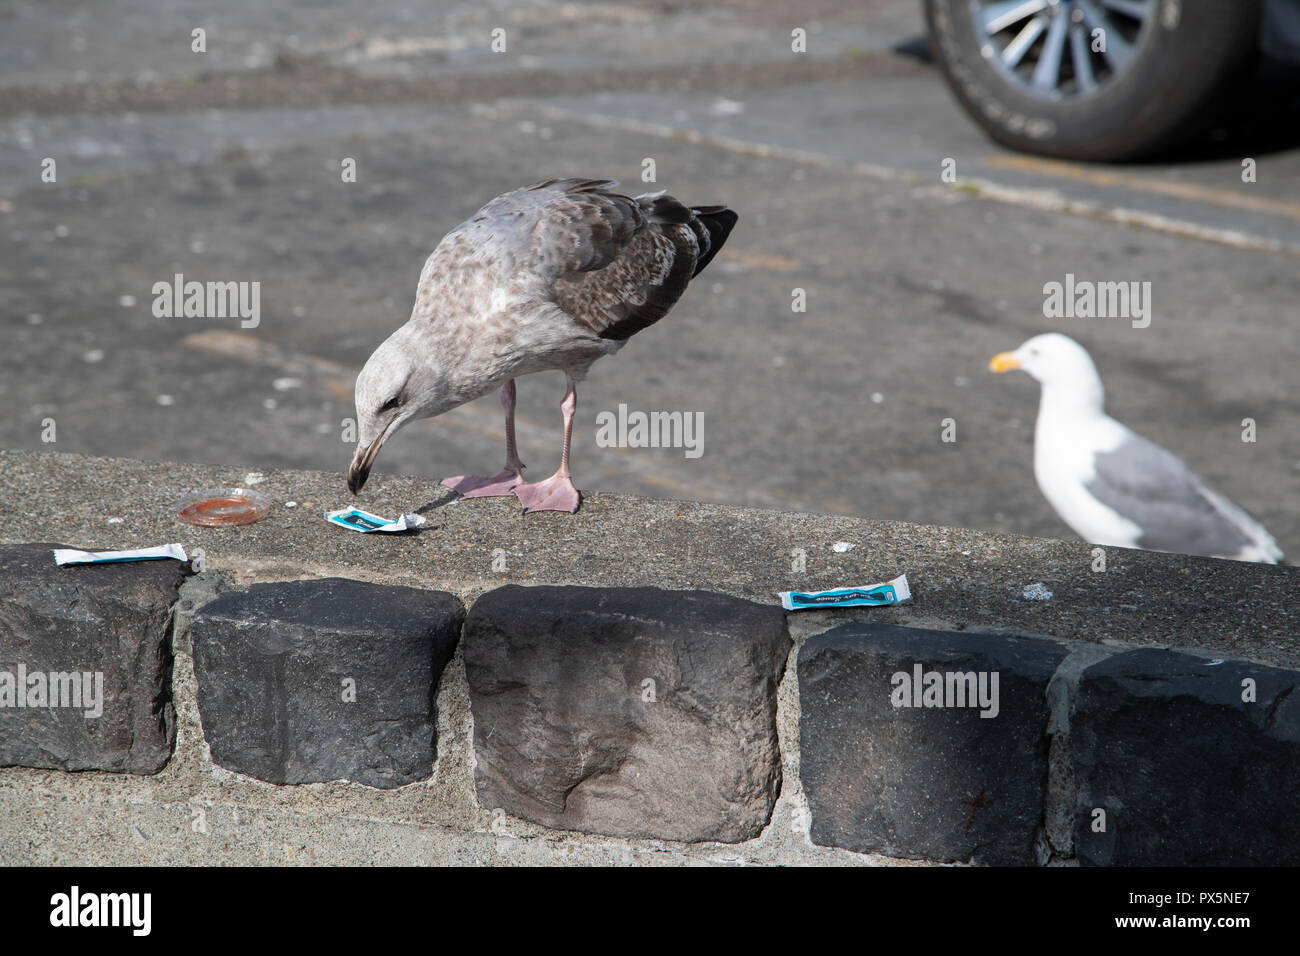 One young and one mature seagull (Glaucous-winged gulls, Larus Glaucescens) inspecting leftover wrappings and trash in a parking lot in Vancouver, BC. - Stock Image